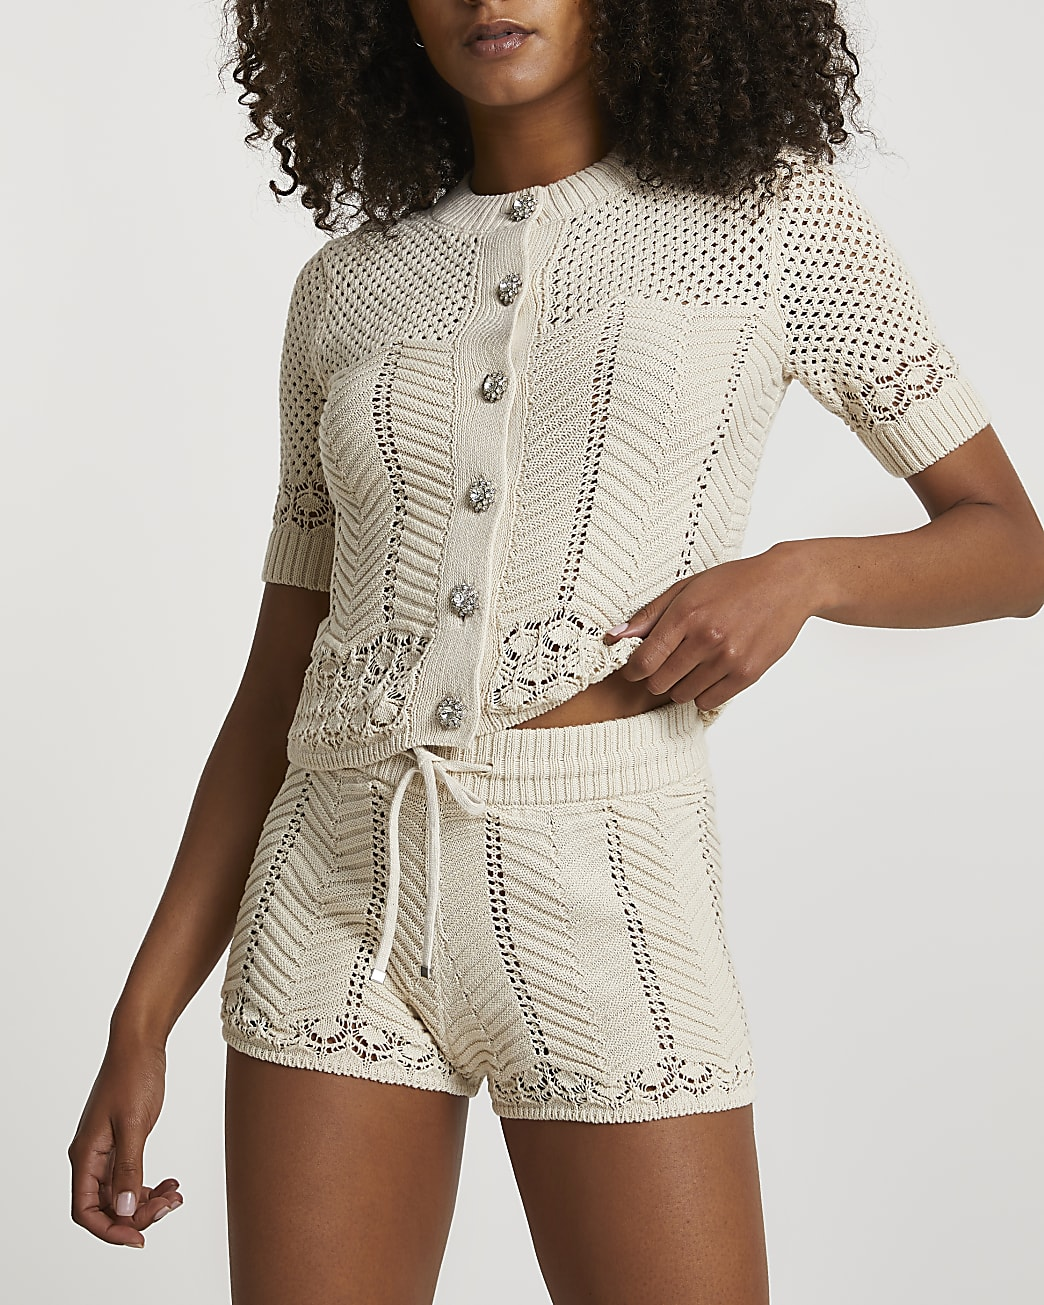 Cream knitted shorts